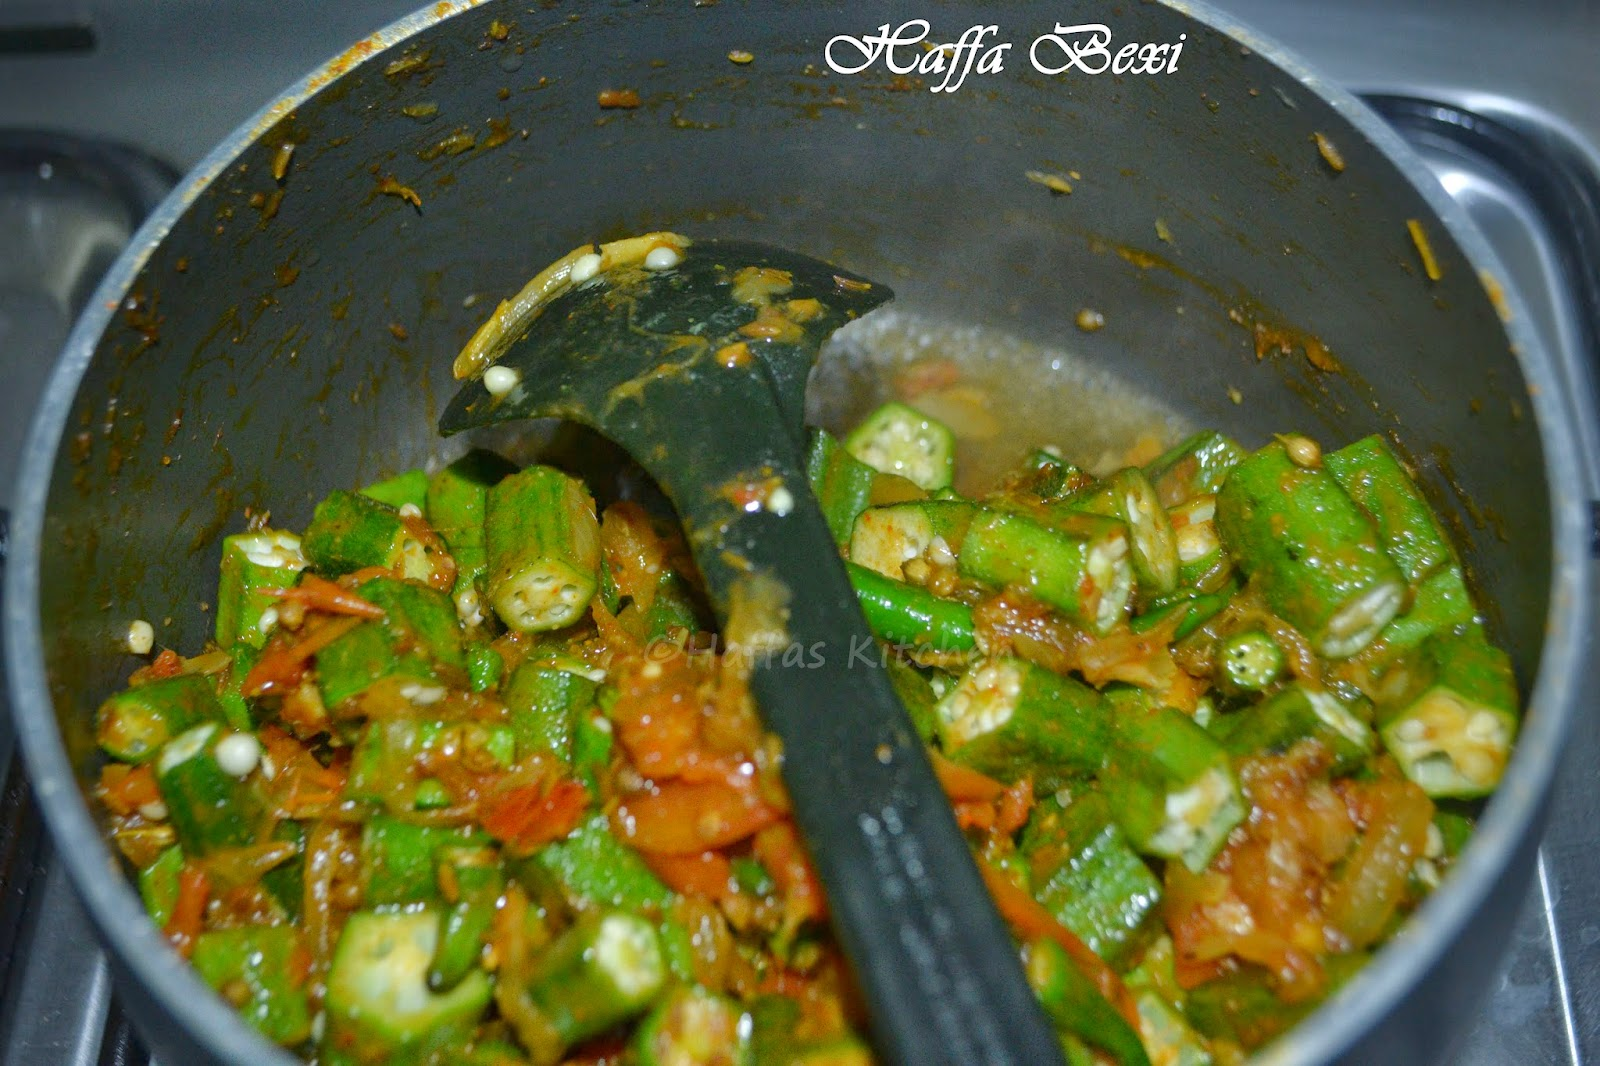 Diet Okra| Diet recipes| recipes without oil| healthy okra recipes| low carb diet| Oil free recipes| Bhindi with no oil| Diet food| healthy diet| Vegan diet recipes|